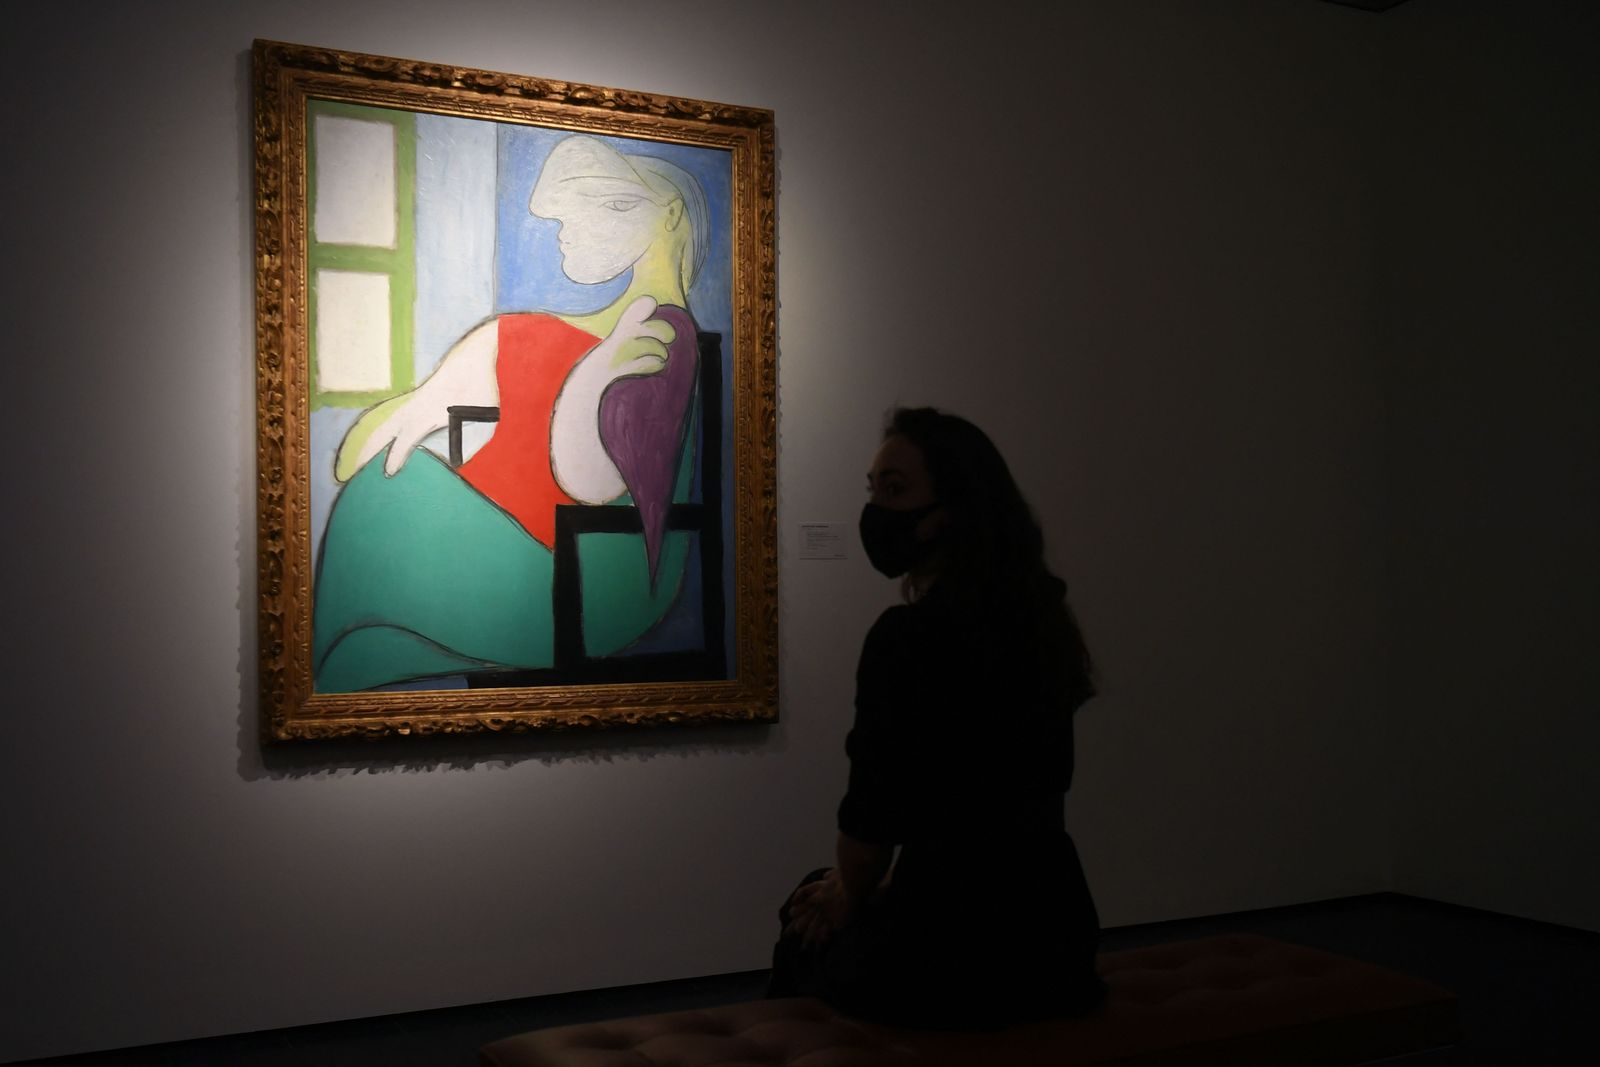 FILES-US-ART-PICASSO-PAINTING-AUCTION